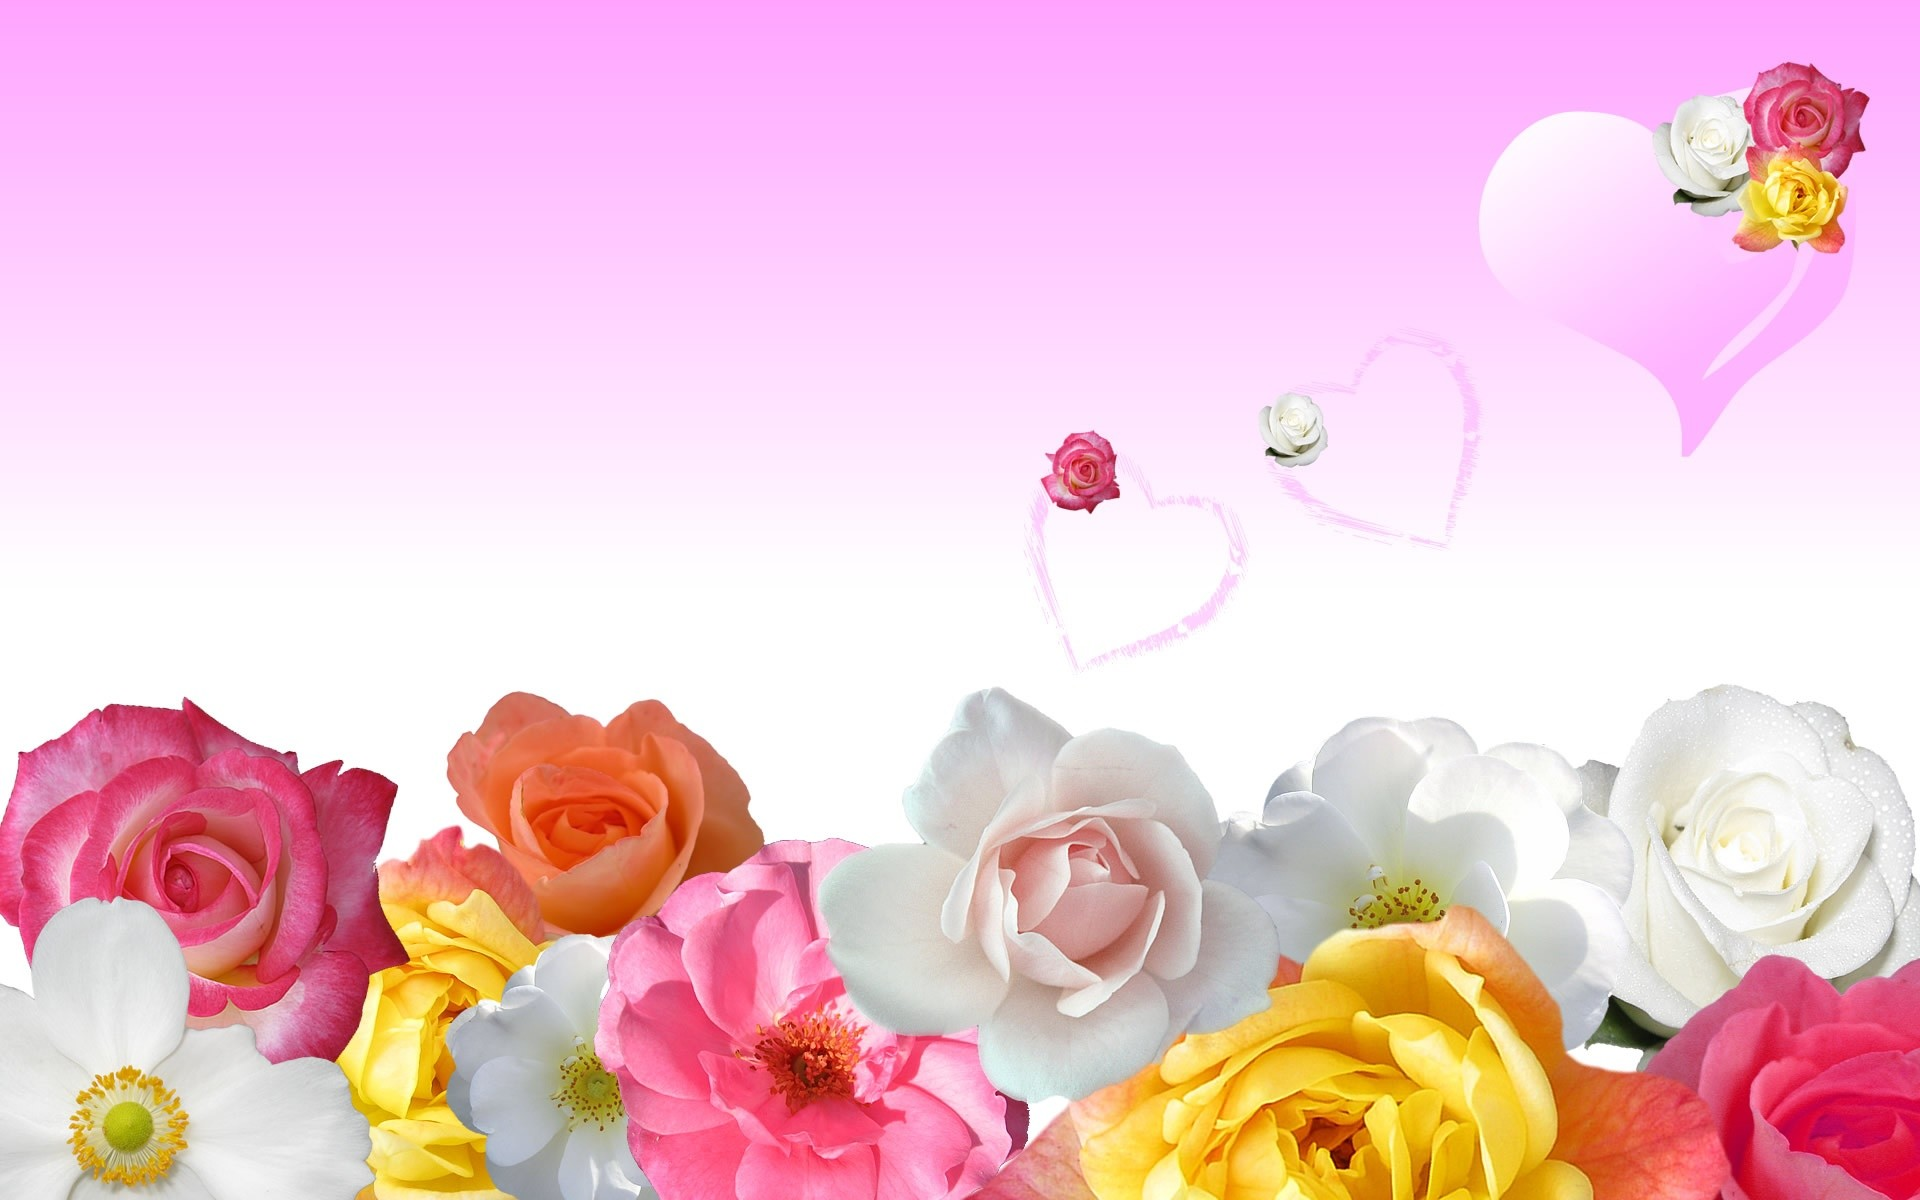 Res: 1920x1200, Backgrounds For Love Heart Wallpaper About Flowers And Hart No Name Hd Pics  Pc